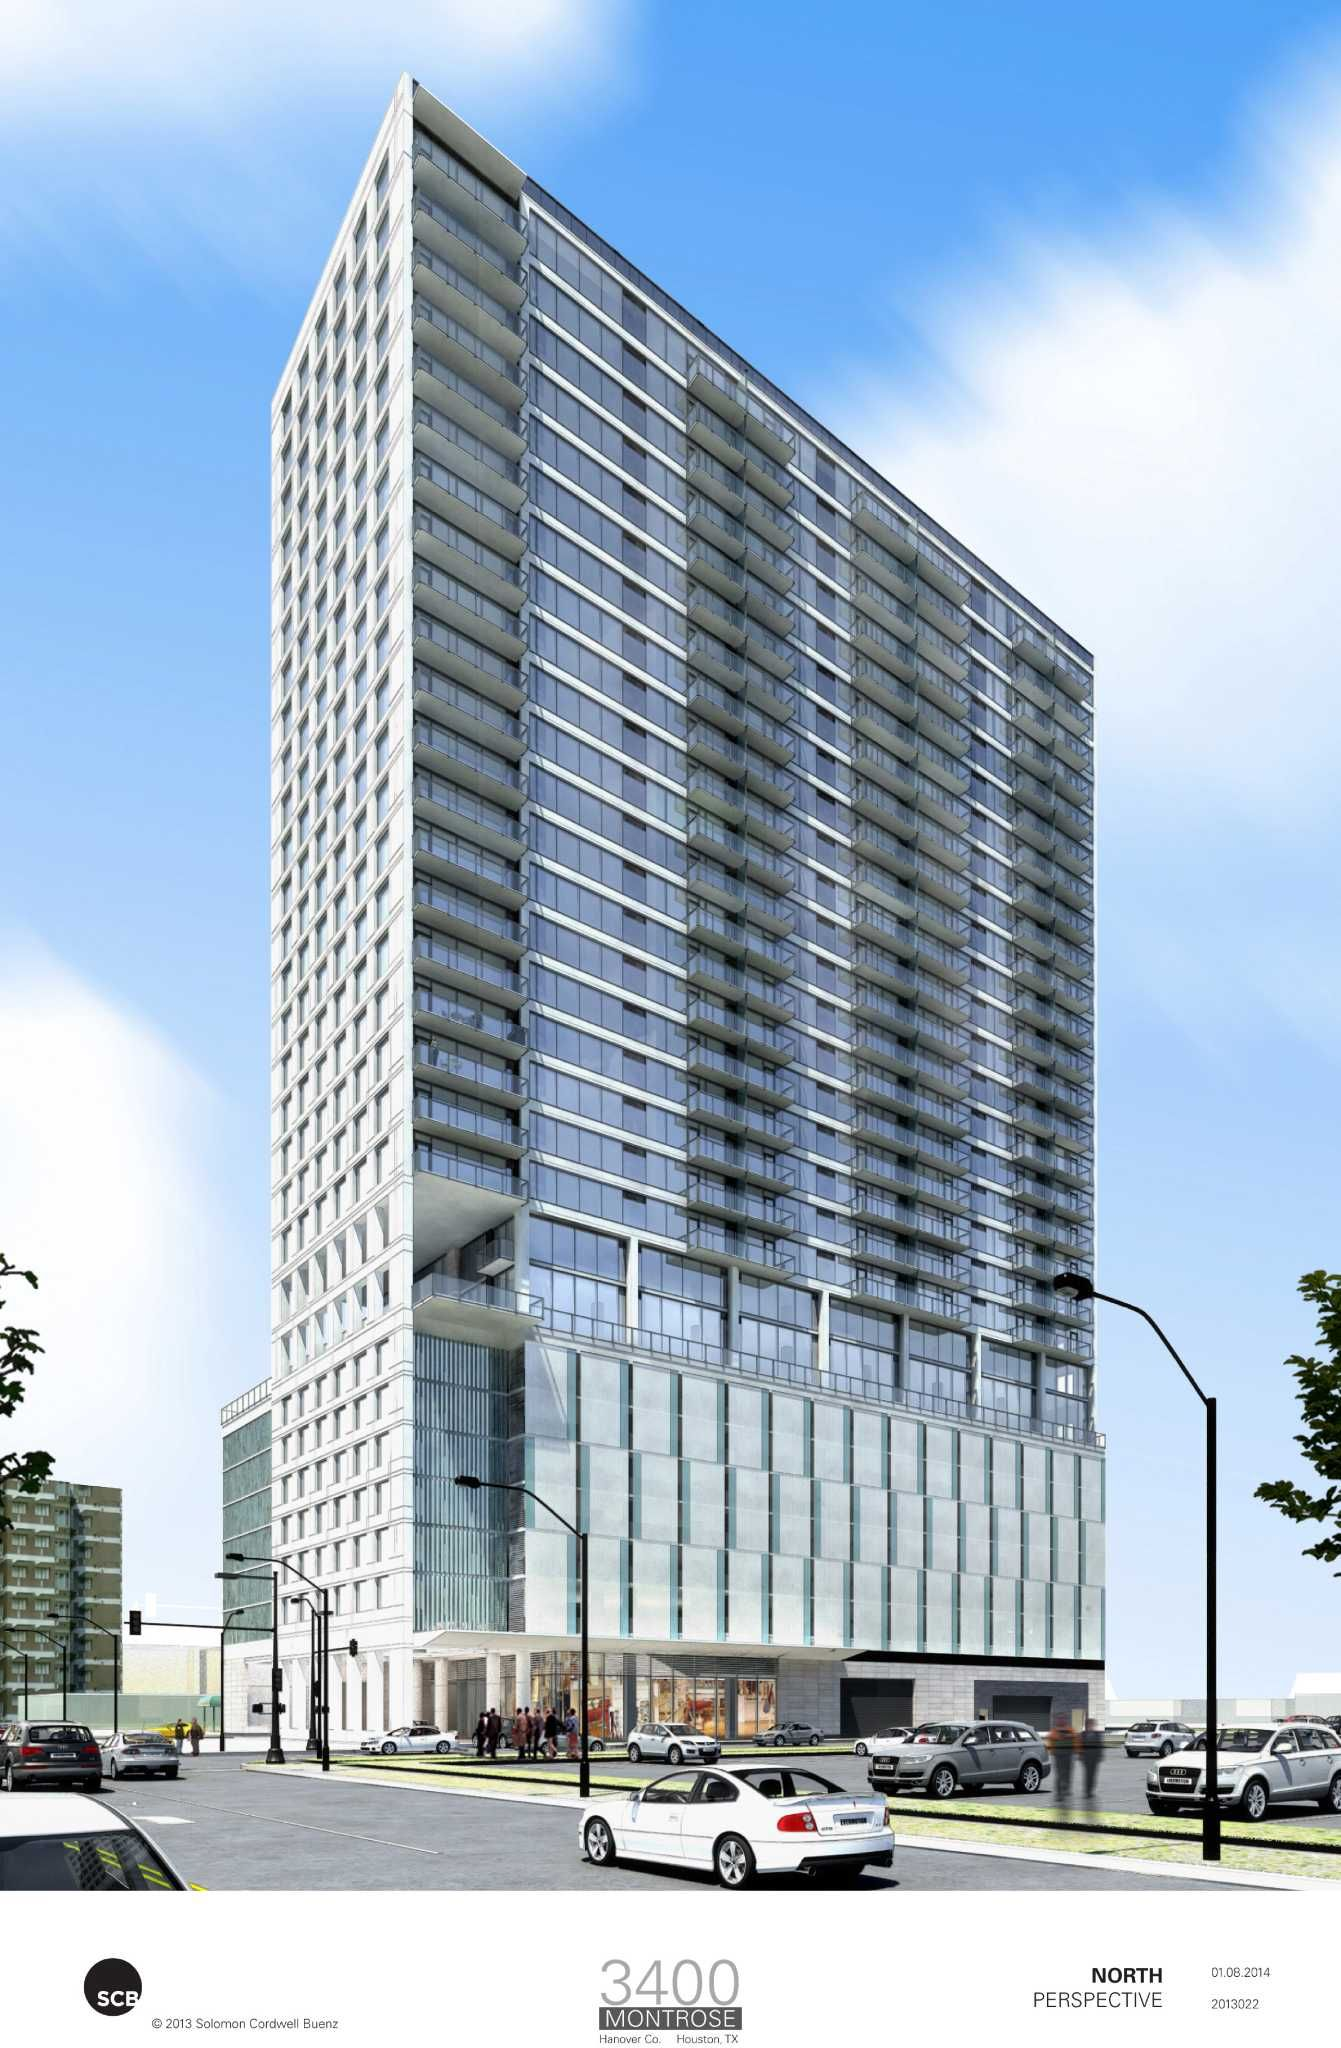 30 Story Apartment Tower Planned For Montrose Multi Storey Building Building Design Montrose